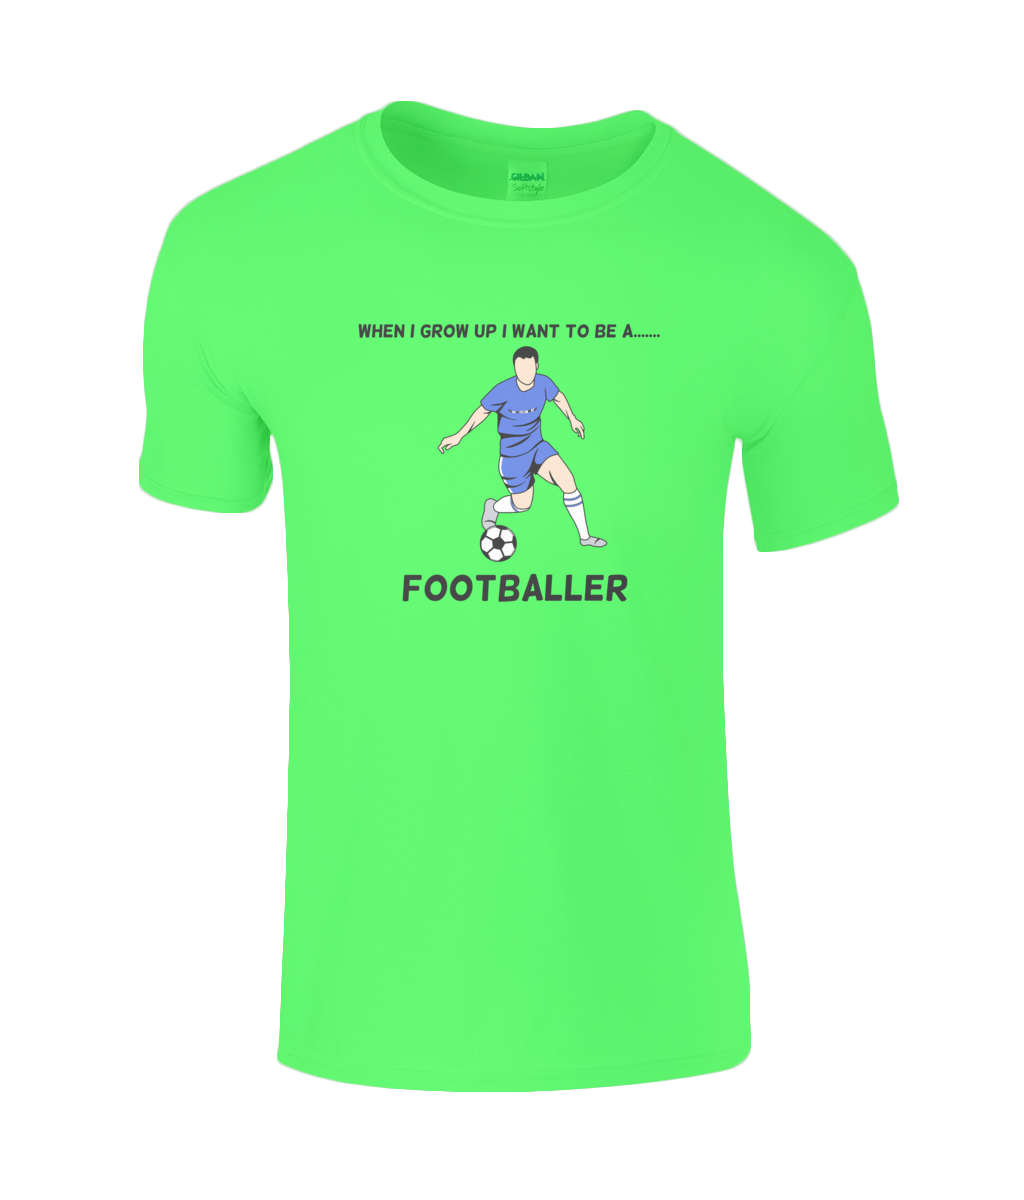 When I Grow Up I Want To Be A Footballer - youth's t-shirt